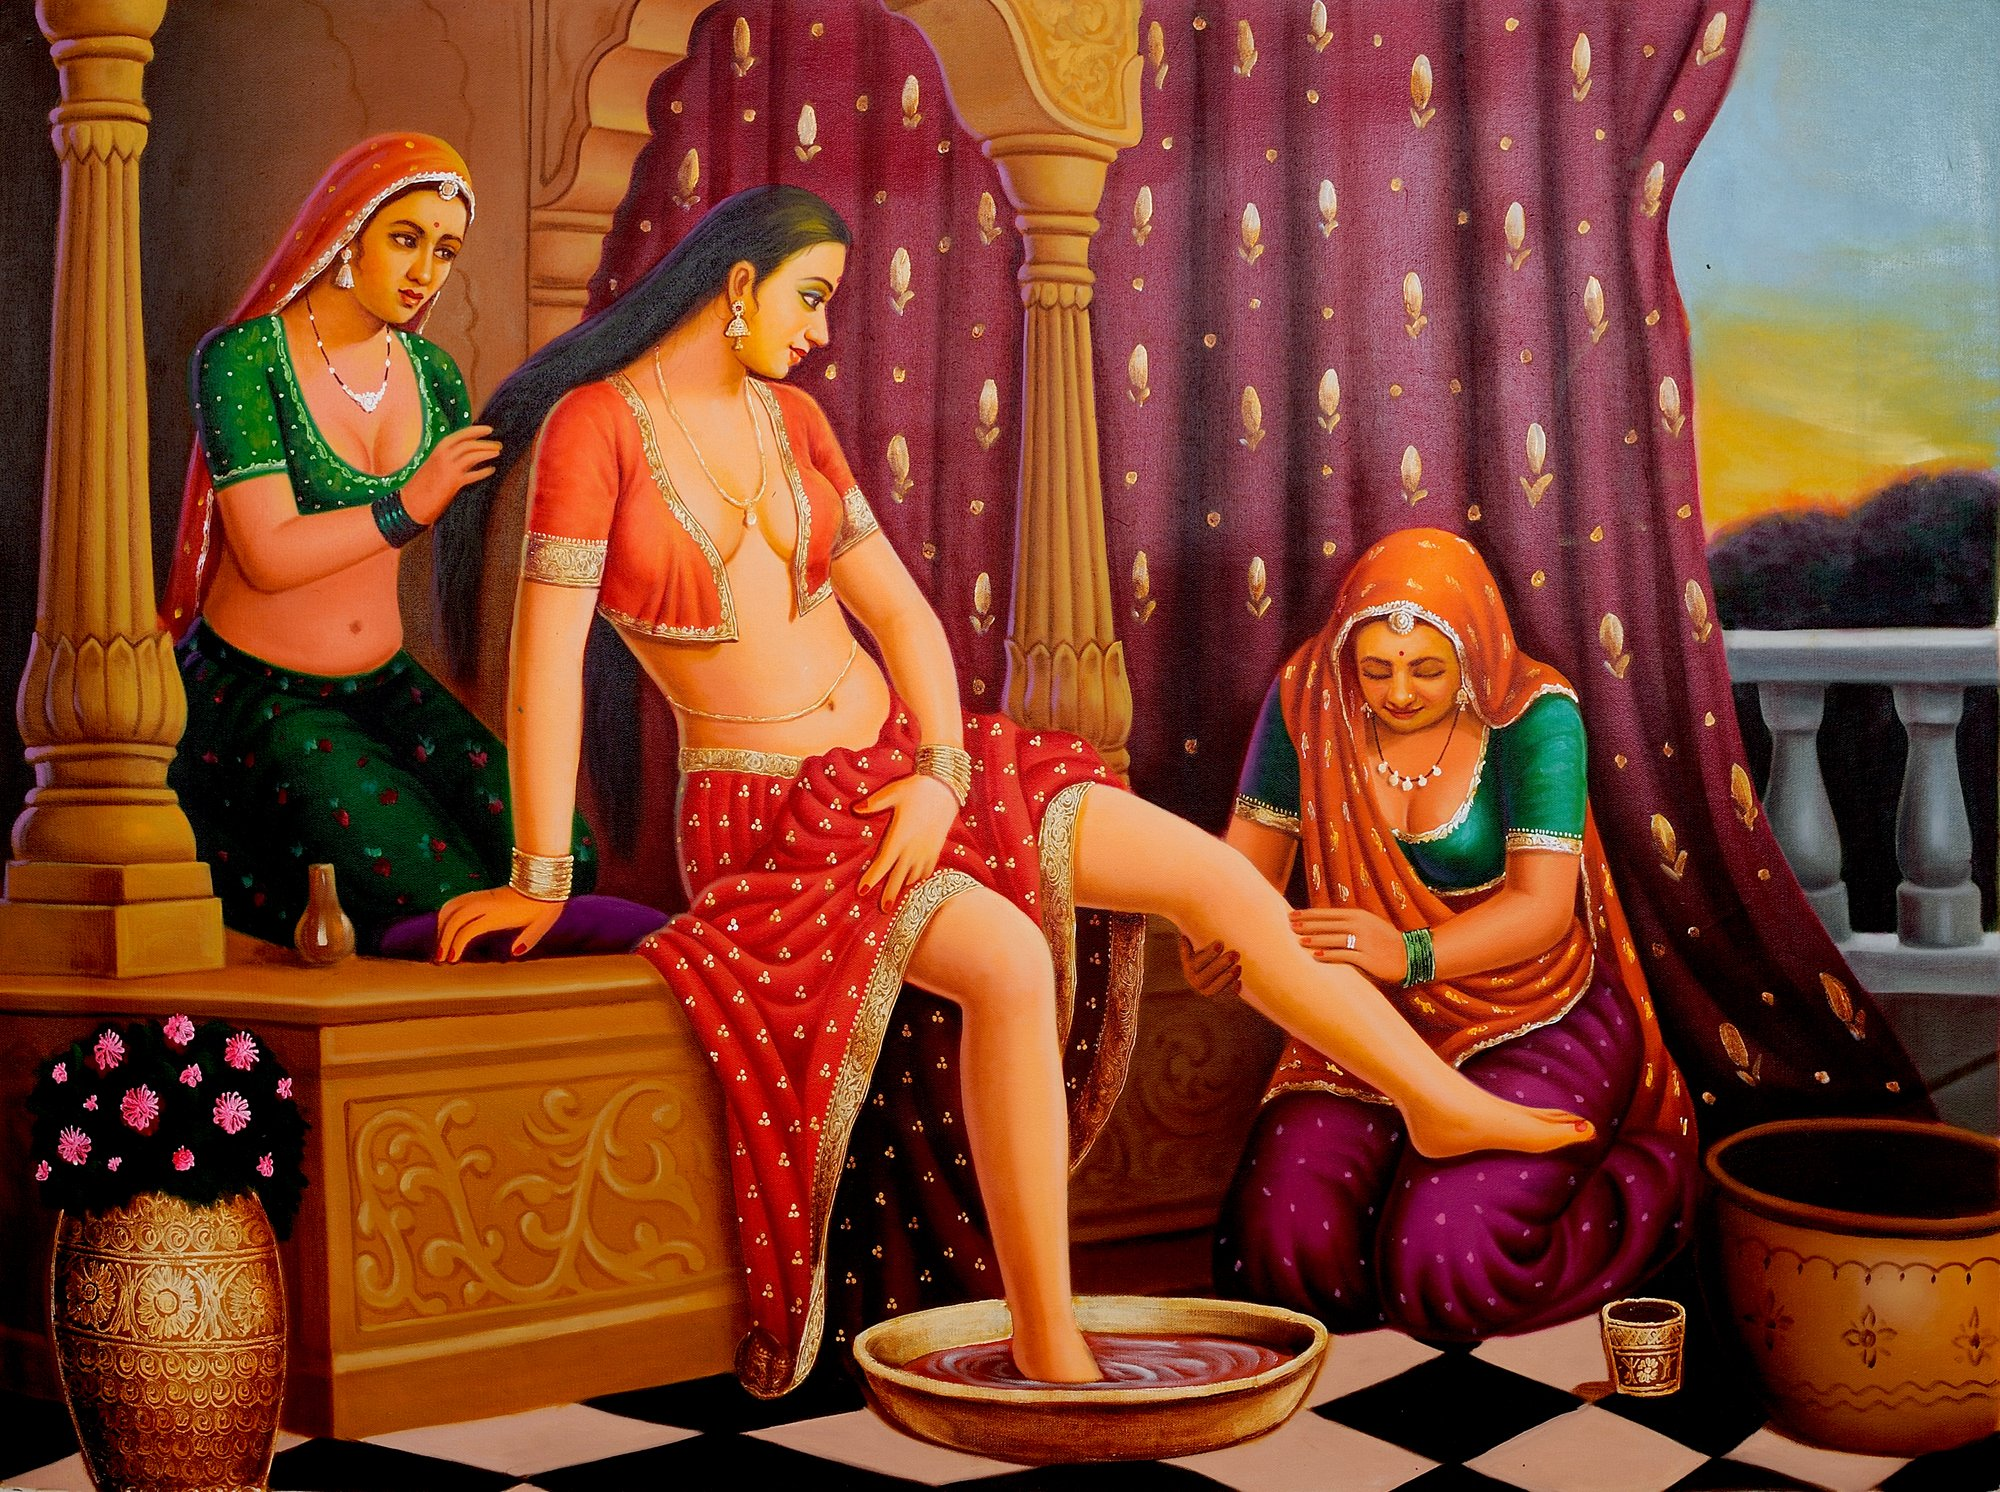 Royal Lady Gets a Bath - Oil on Canvas - Artist: Anup Gomay